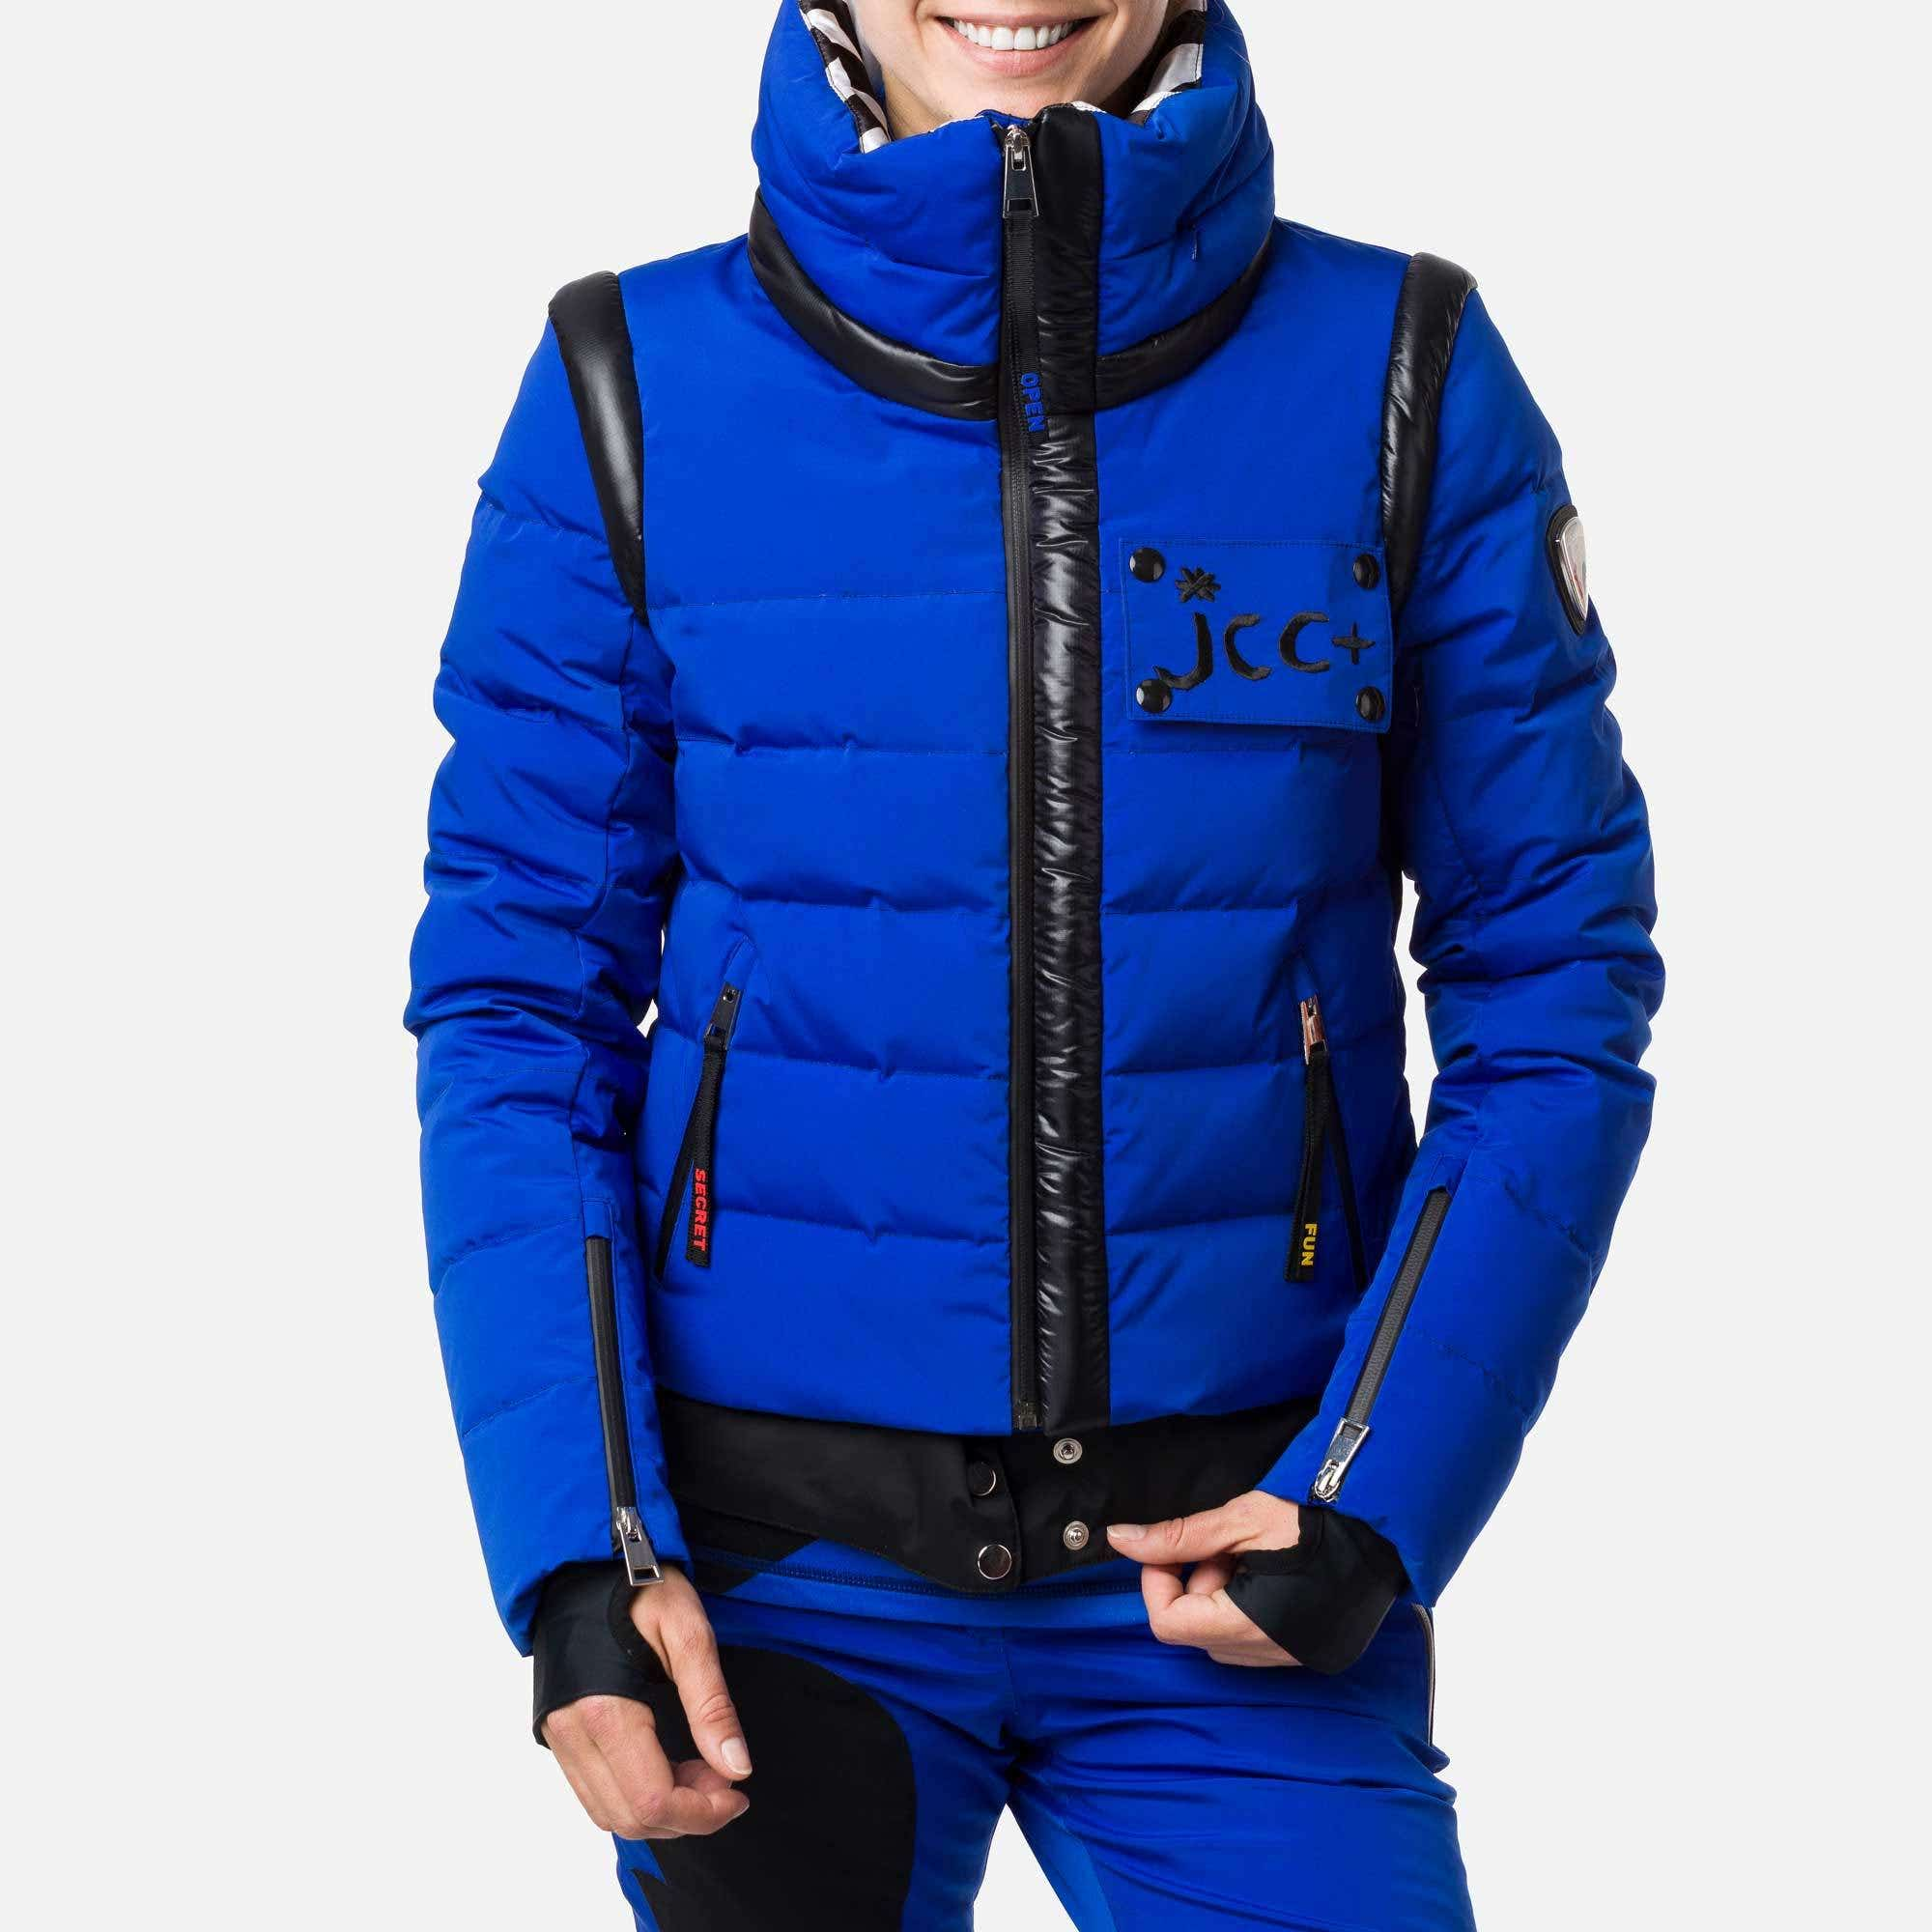 Image of JCC Women's Mooni Down Ski Jacket